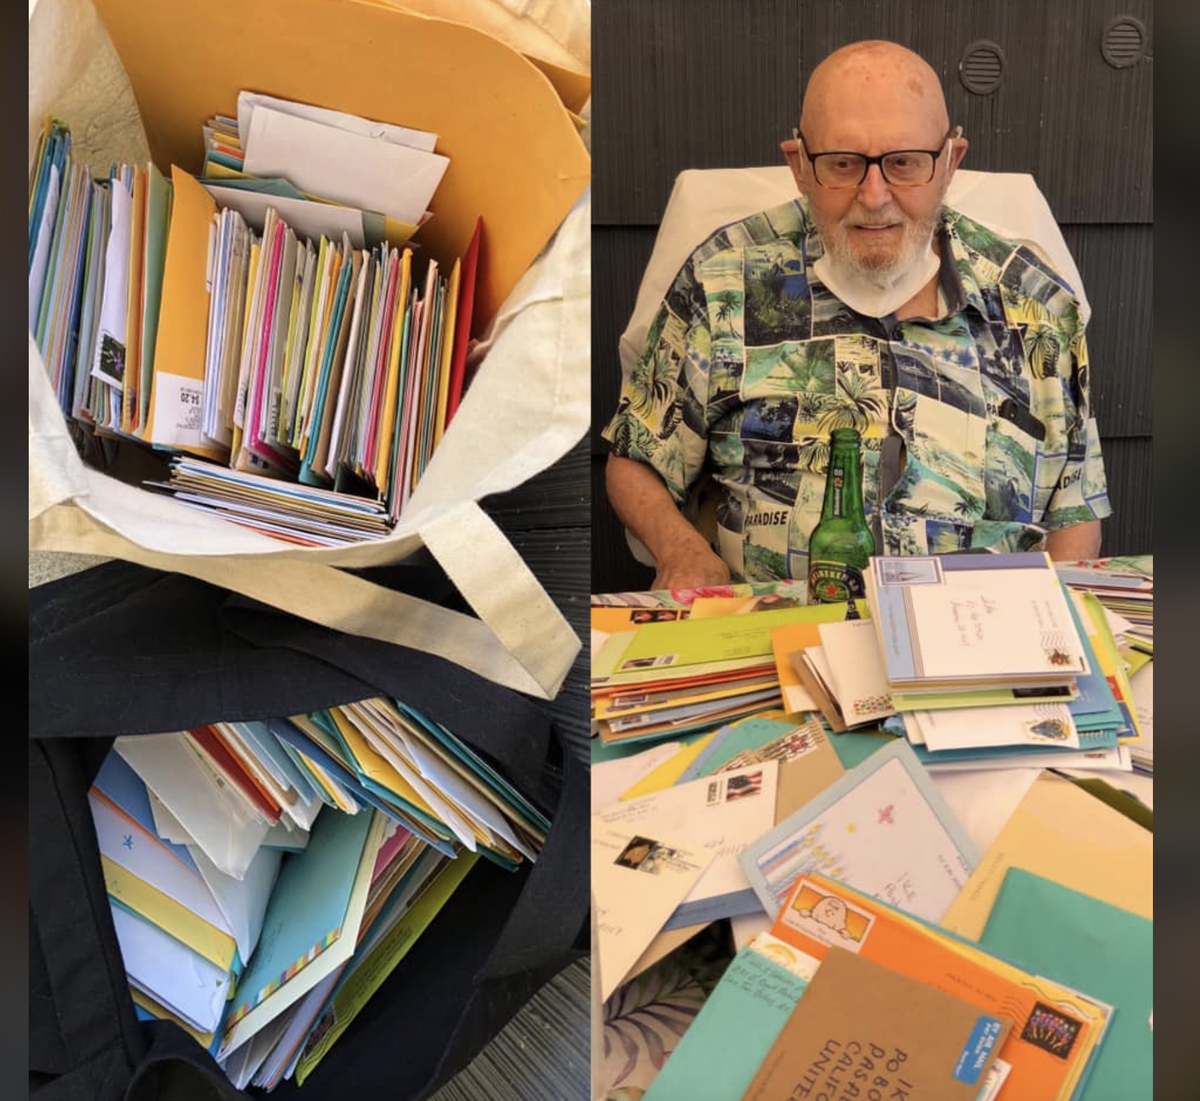 You guys helped Ike (one of my GISH.com participants) celebrate his 100th birthday in style. In retrospect, I should probably have sent him a letter opener... Thanks for showing him some well-deserved love. twitter.com/mishacollins/s…